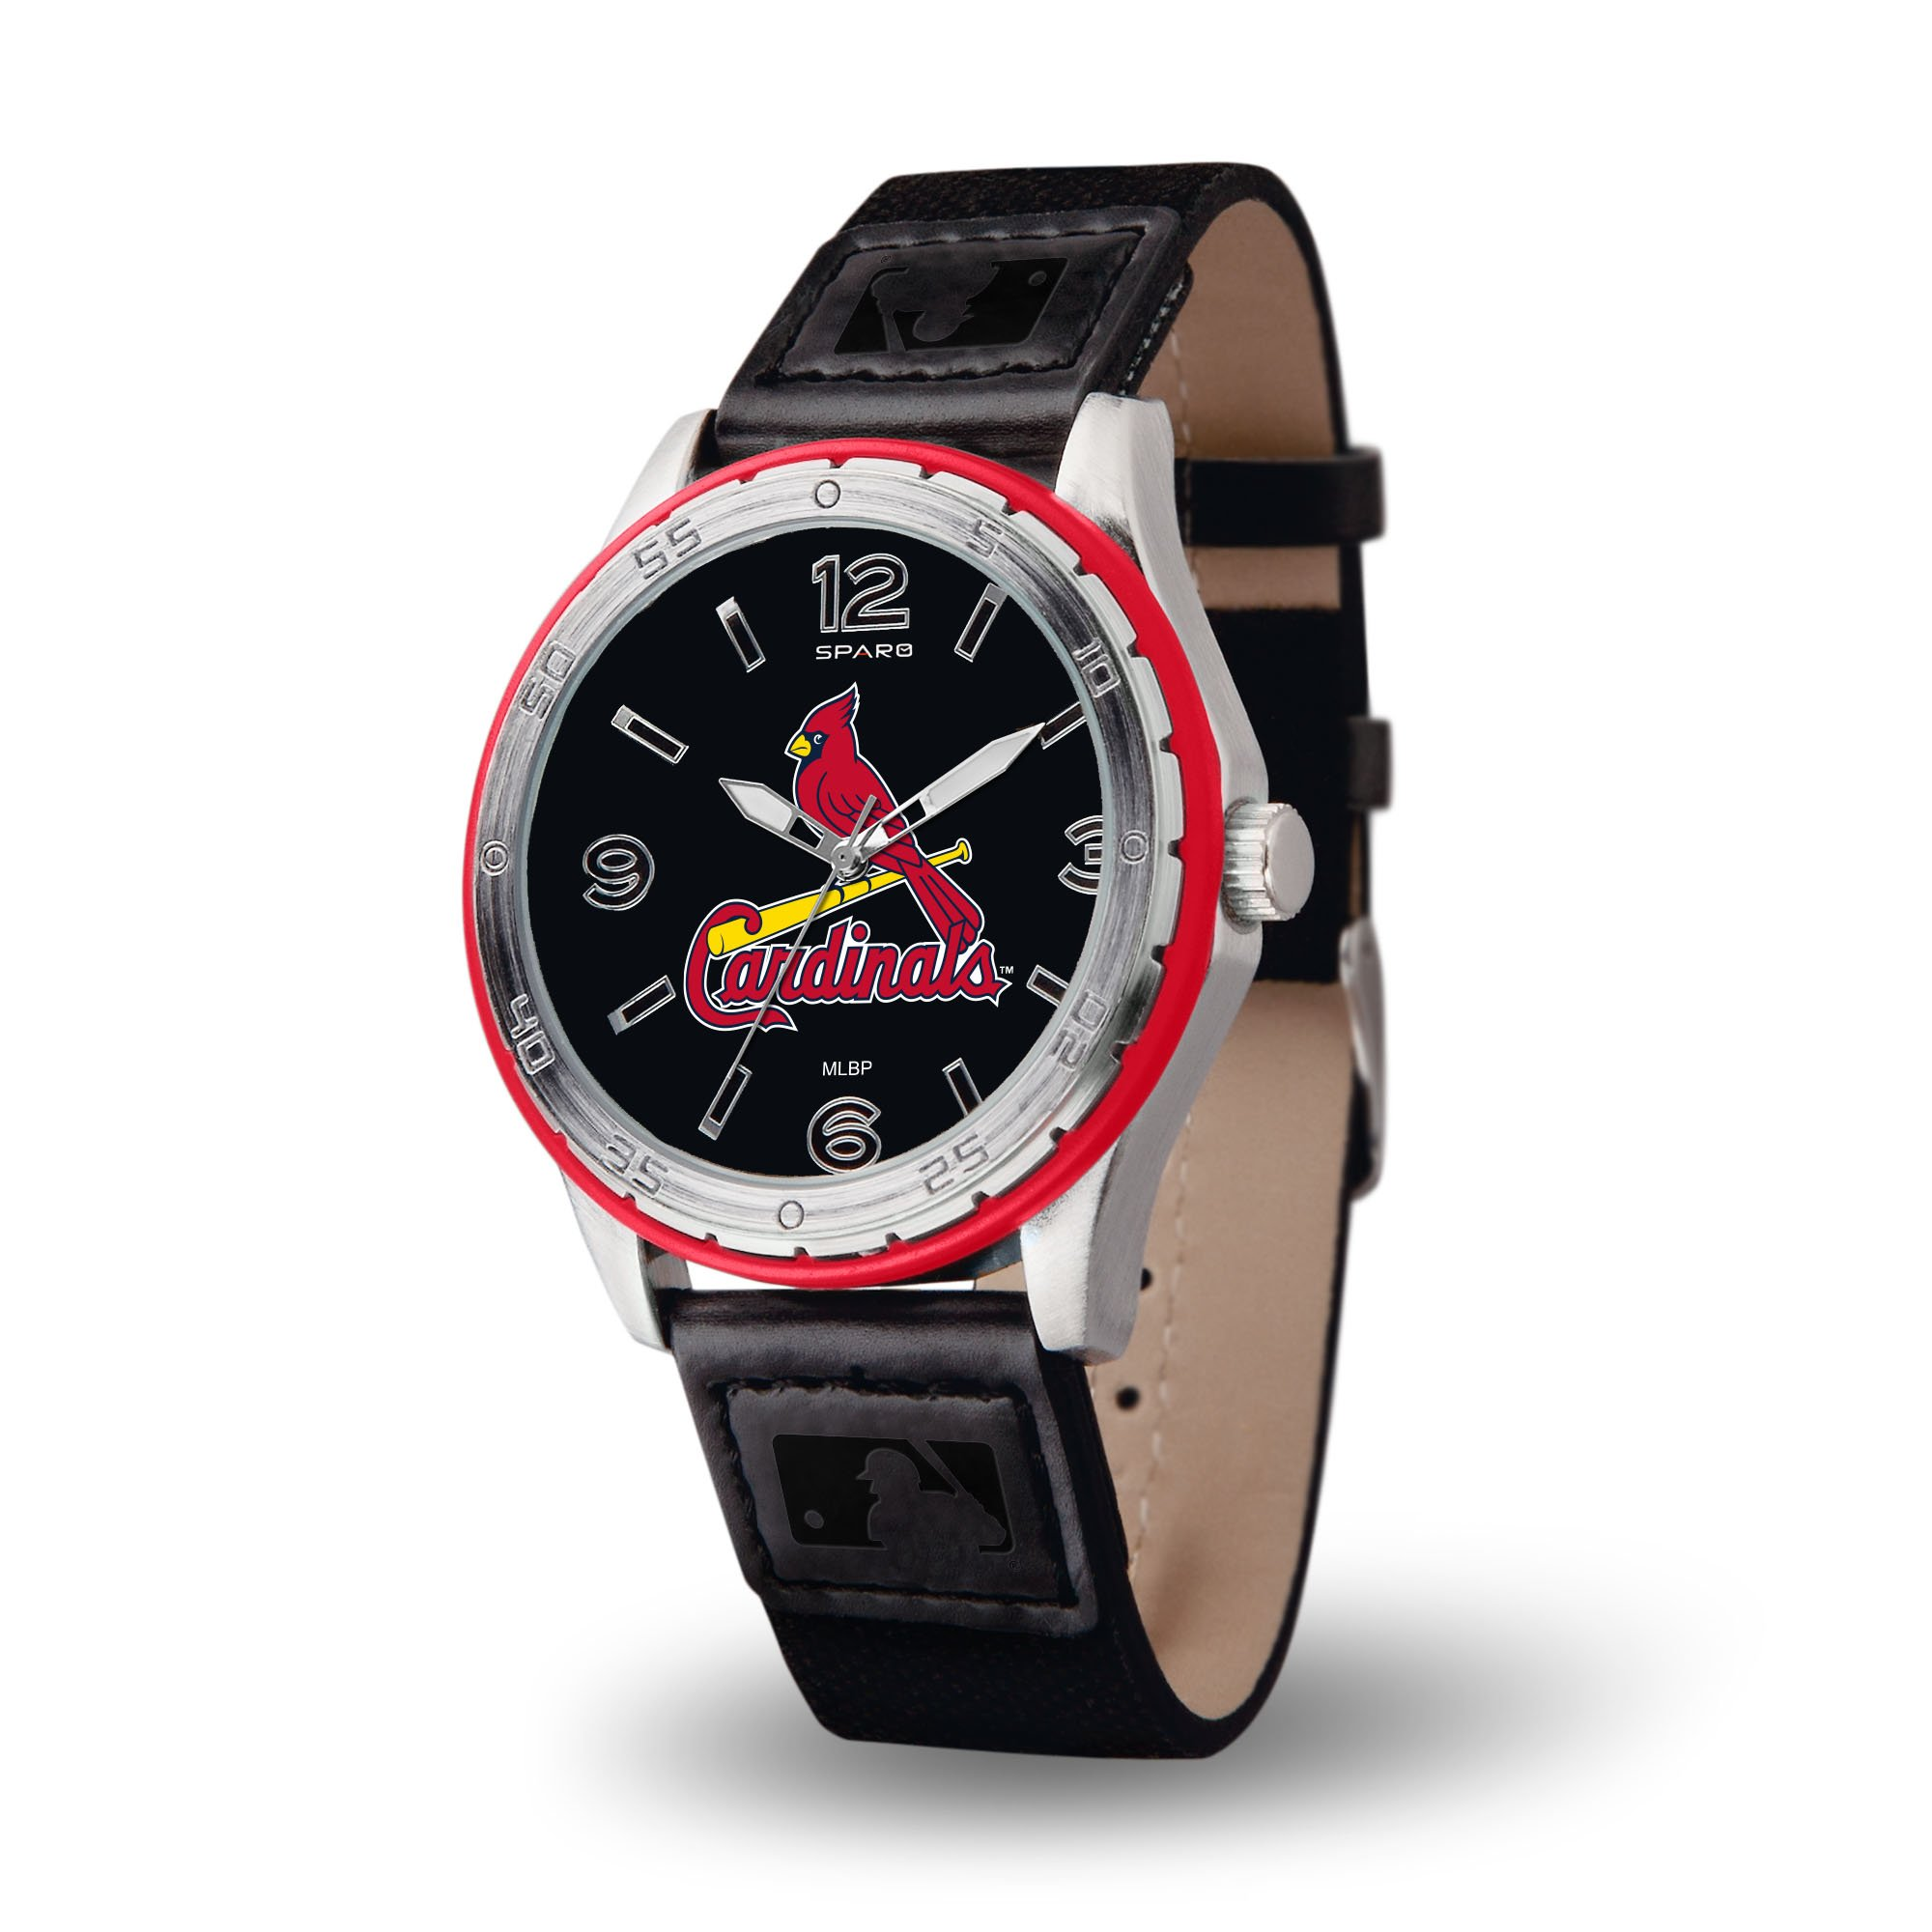 Co color cardinal red - Jewelry Amp Watches